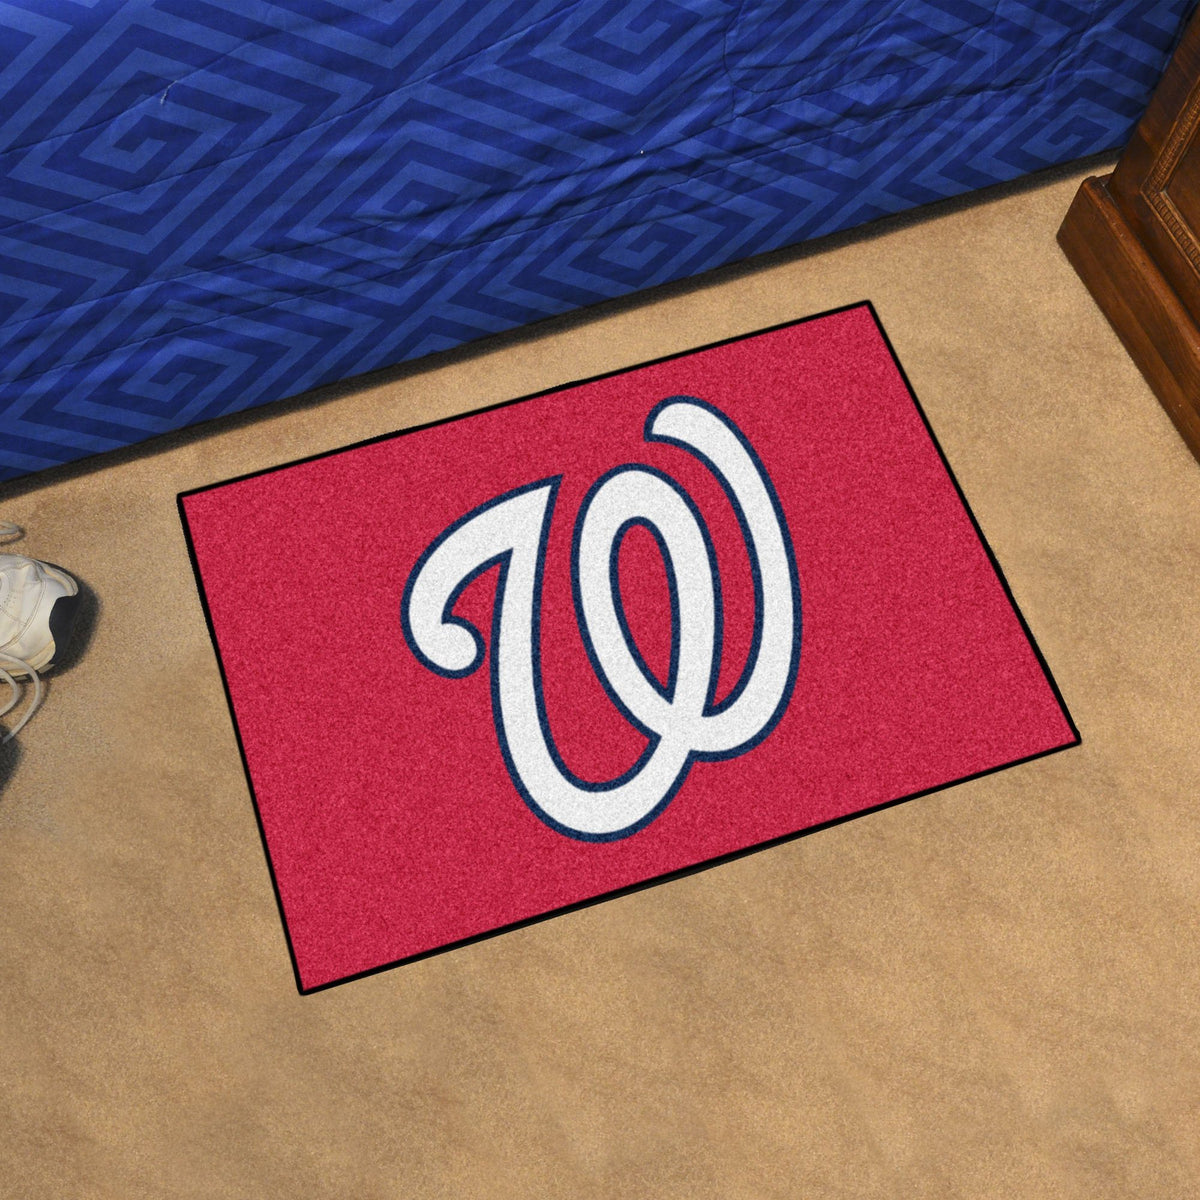 MLB - Starter Mat MLB Mats, Rectangular Mats, Starter Mat, MLB, Home Fan Mats Washington Nationals